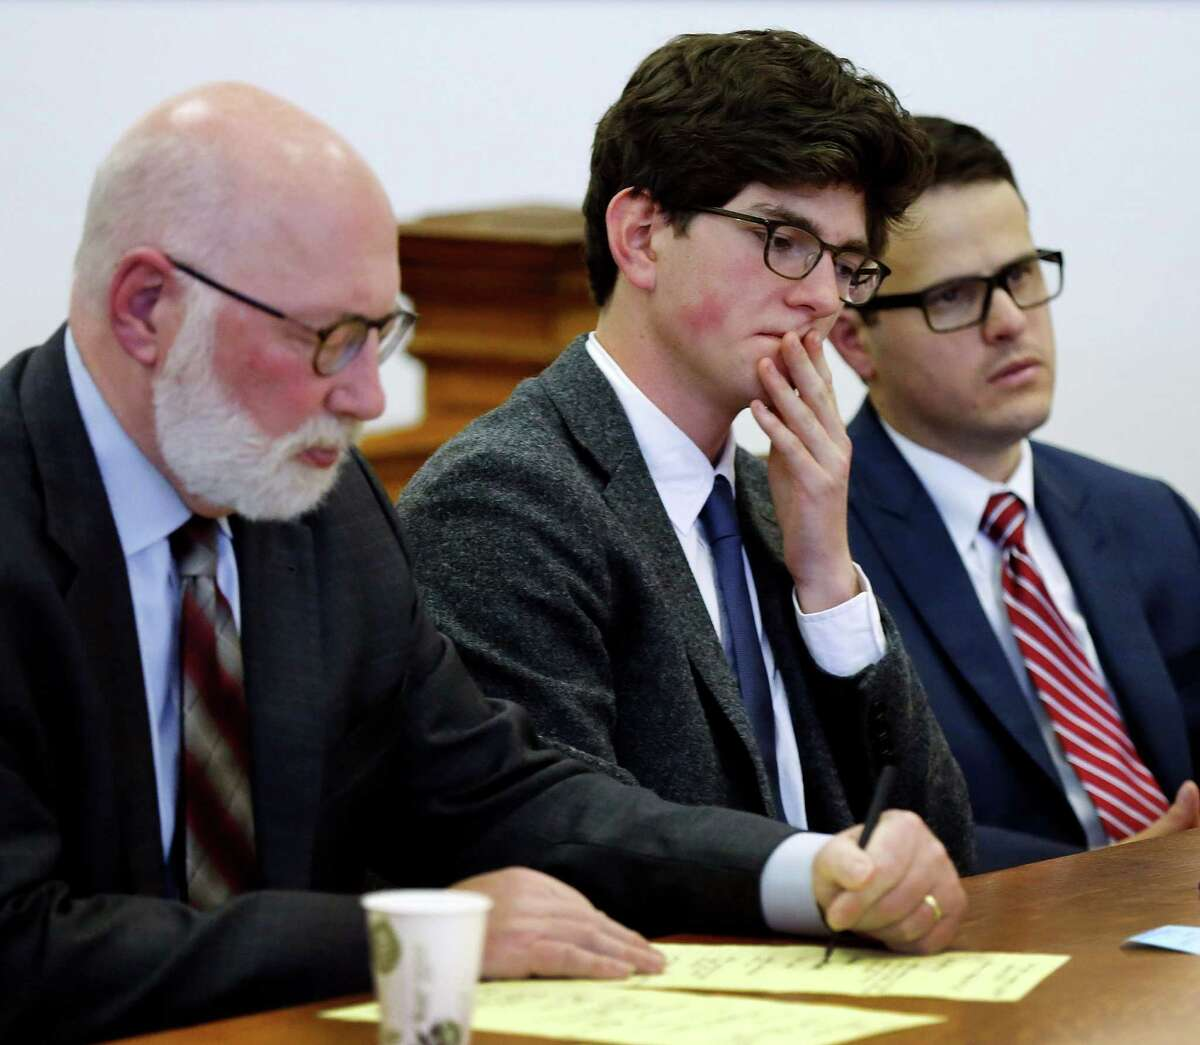 Owen Labrie, center, listens to a recorded statement from his victim with his lawyer J.W. Carney, left, and Sam Zaganjoir before being sentenced in Merrimack County Superior Court Thursday, Oct. 29, 2015, in Concord, N.H. The graduate of the exclusive St. Paul?'s School was sentenced to a year in jail for sexually assaulting a 15-year-old freshman girl as part of a tradition in which upperclassmen competed to rack up sexual conquests. Labrie was allowed to remain free on bail while he appeals his conviction. (AP Photo/Jim Cole, Pool)